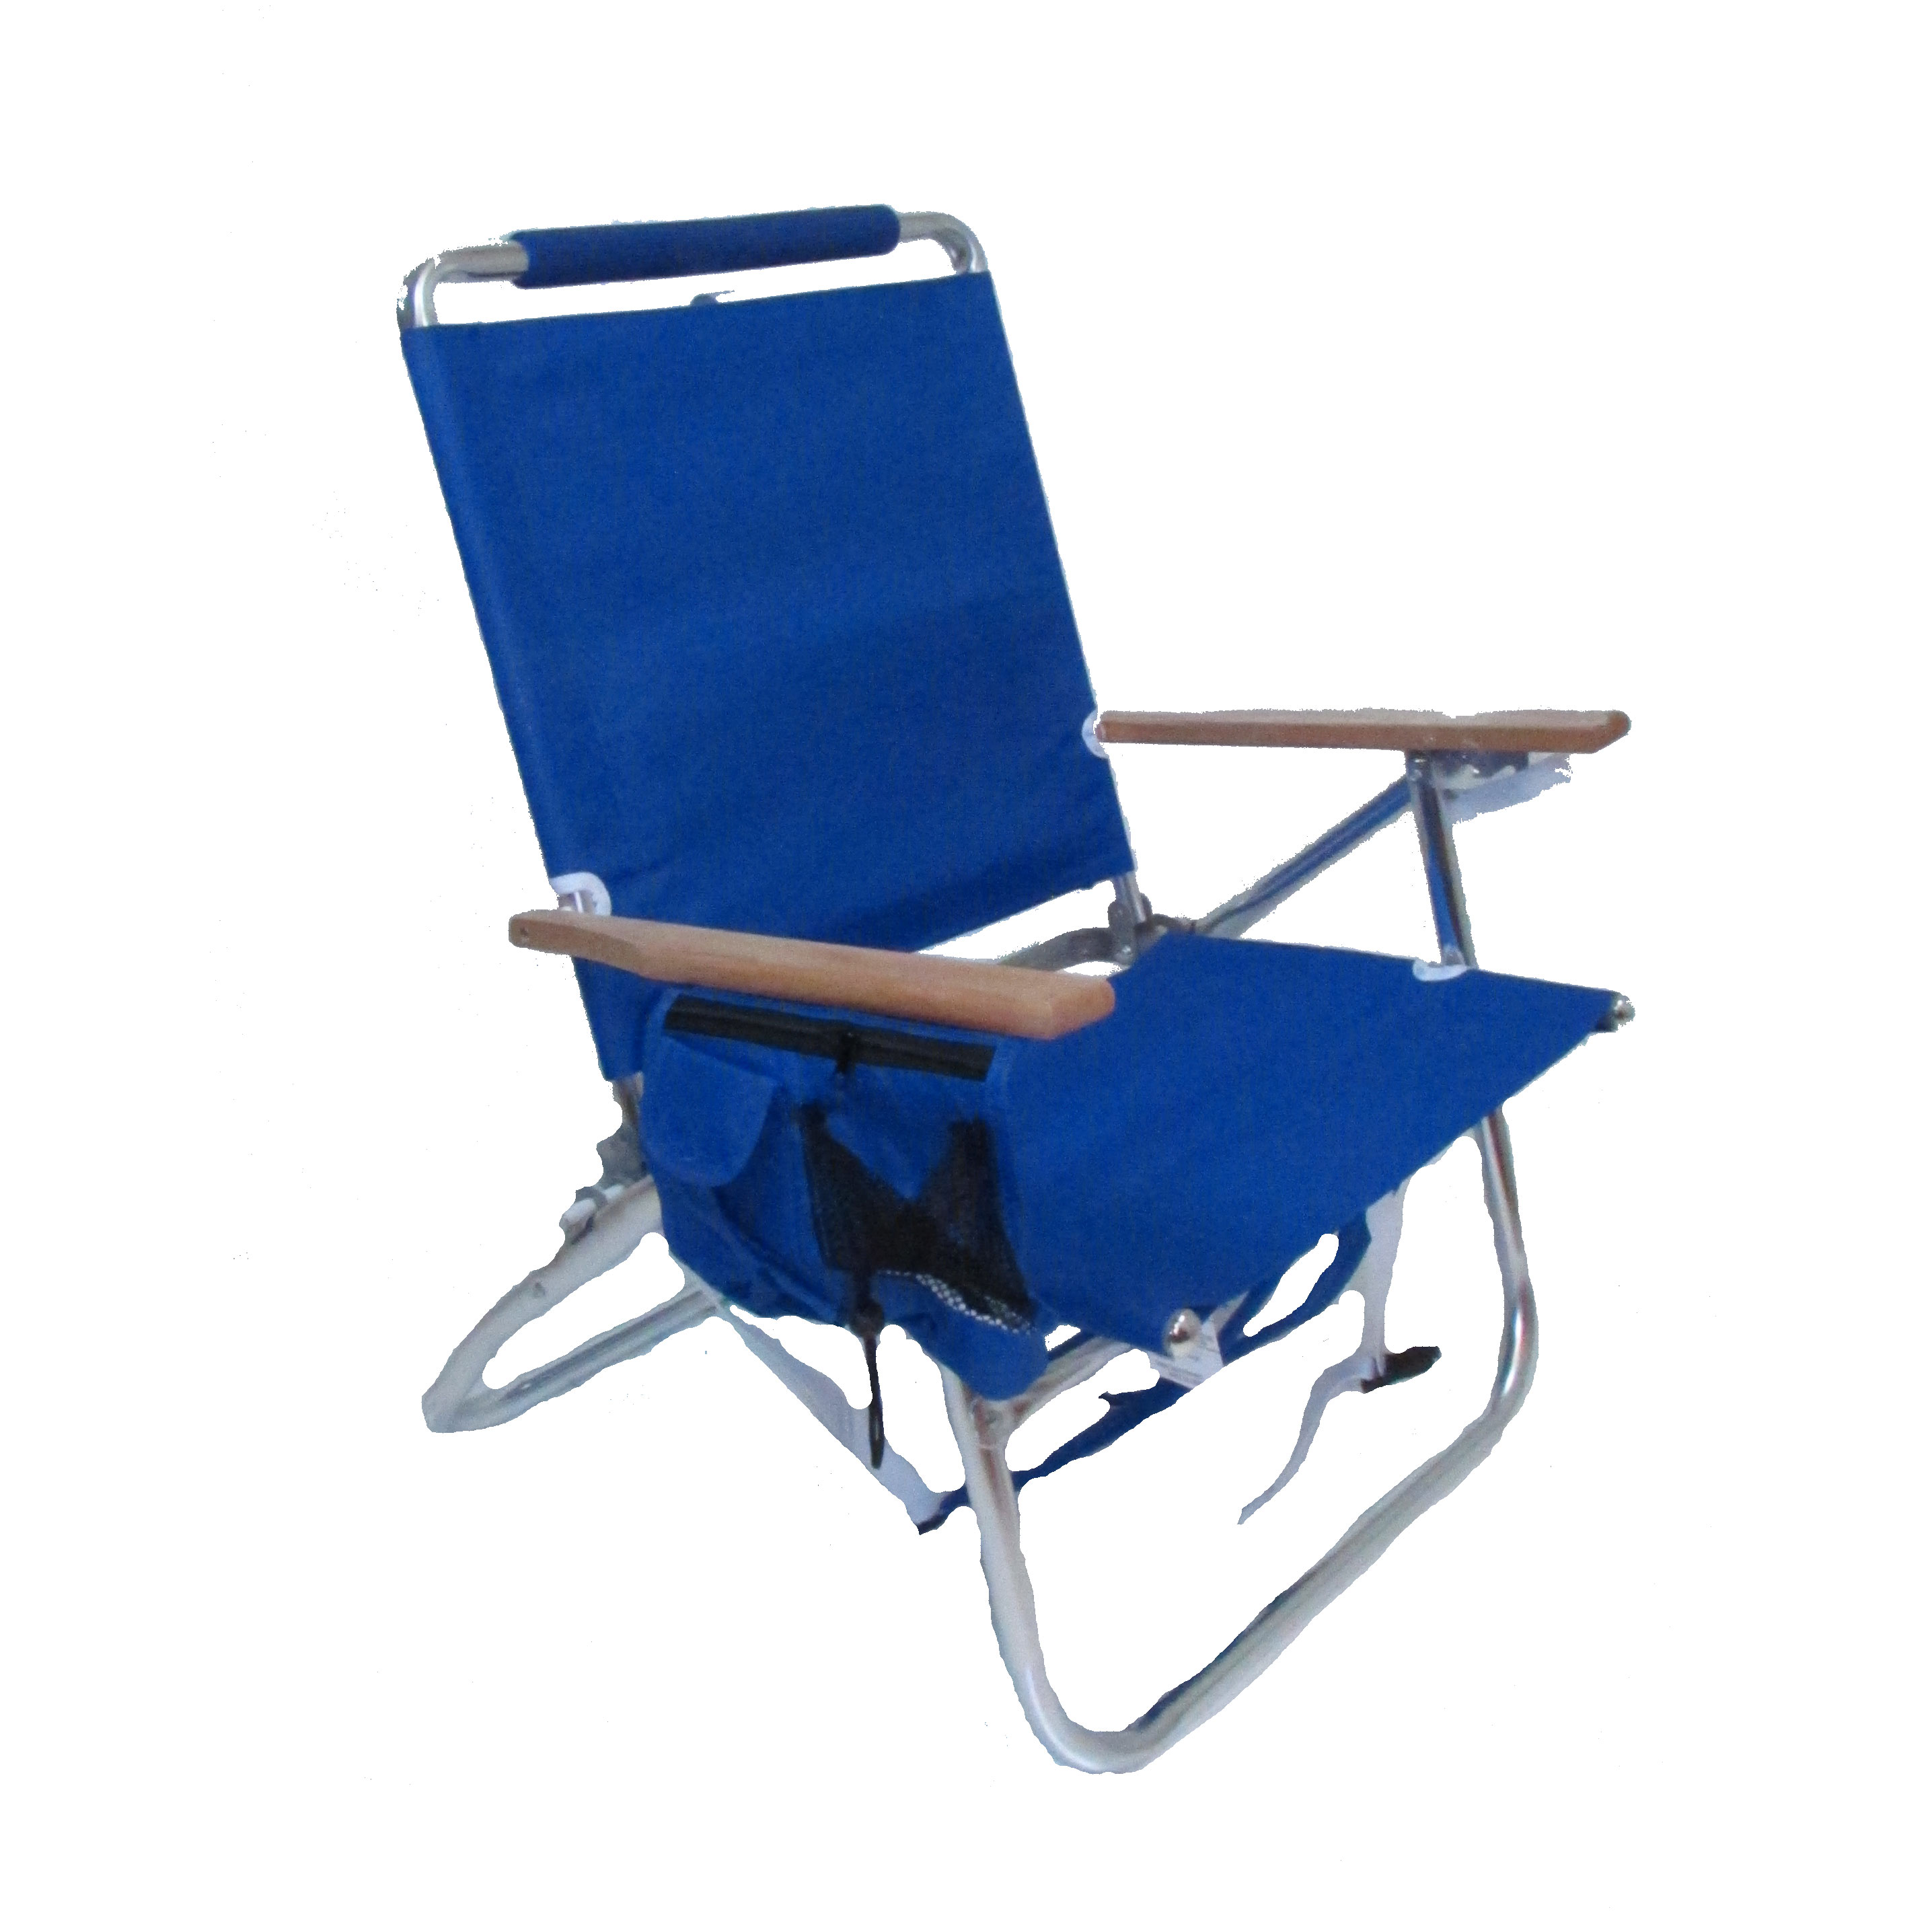 Easy In Easy Out Backpack Chair by Rio Beach